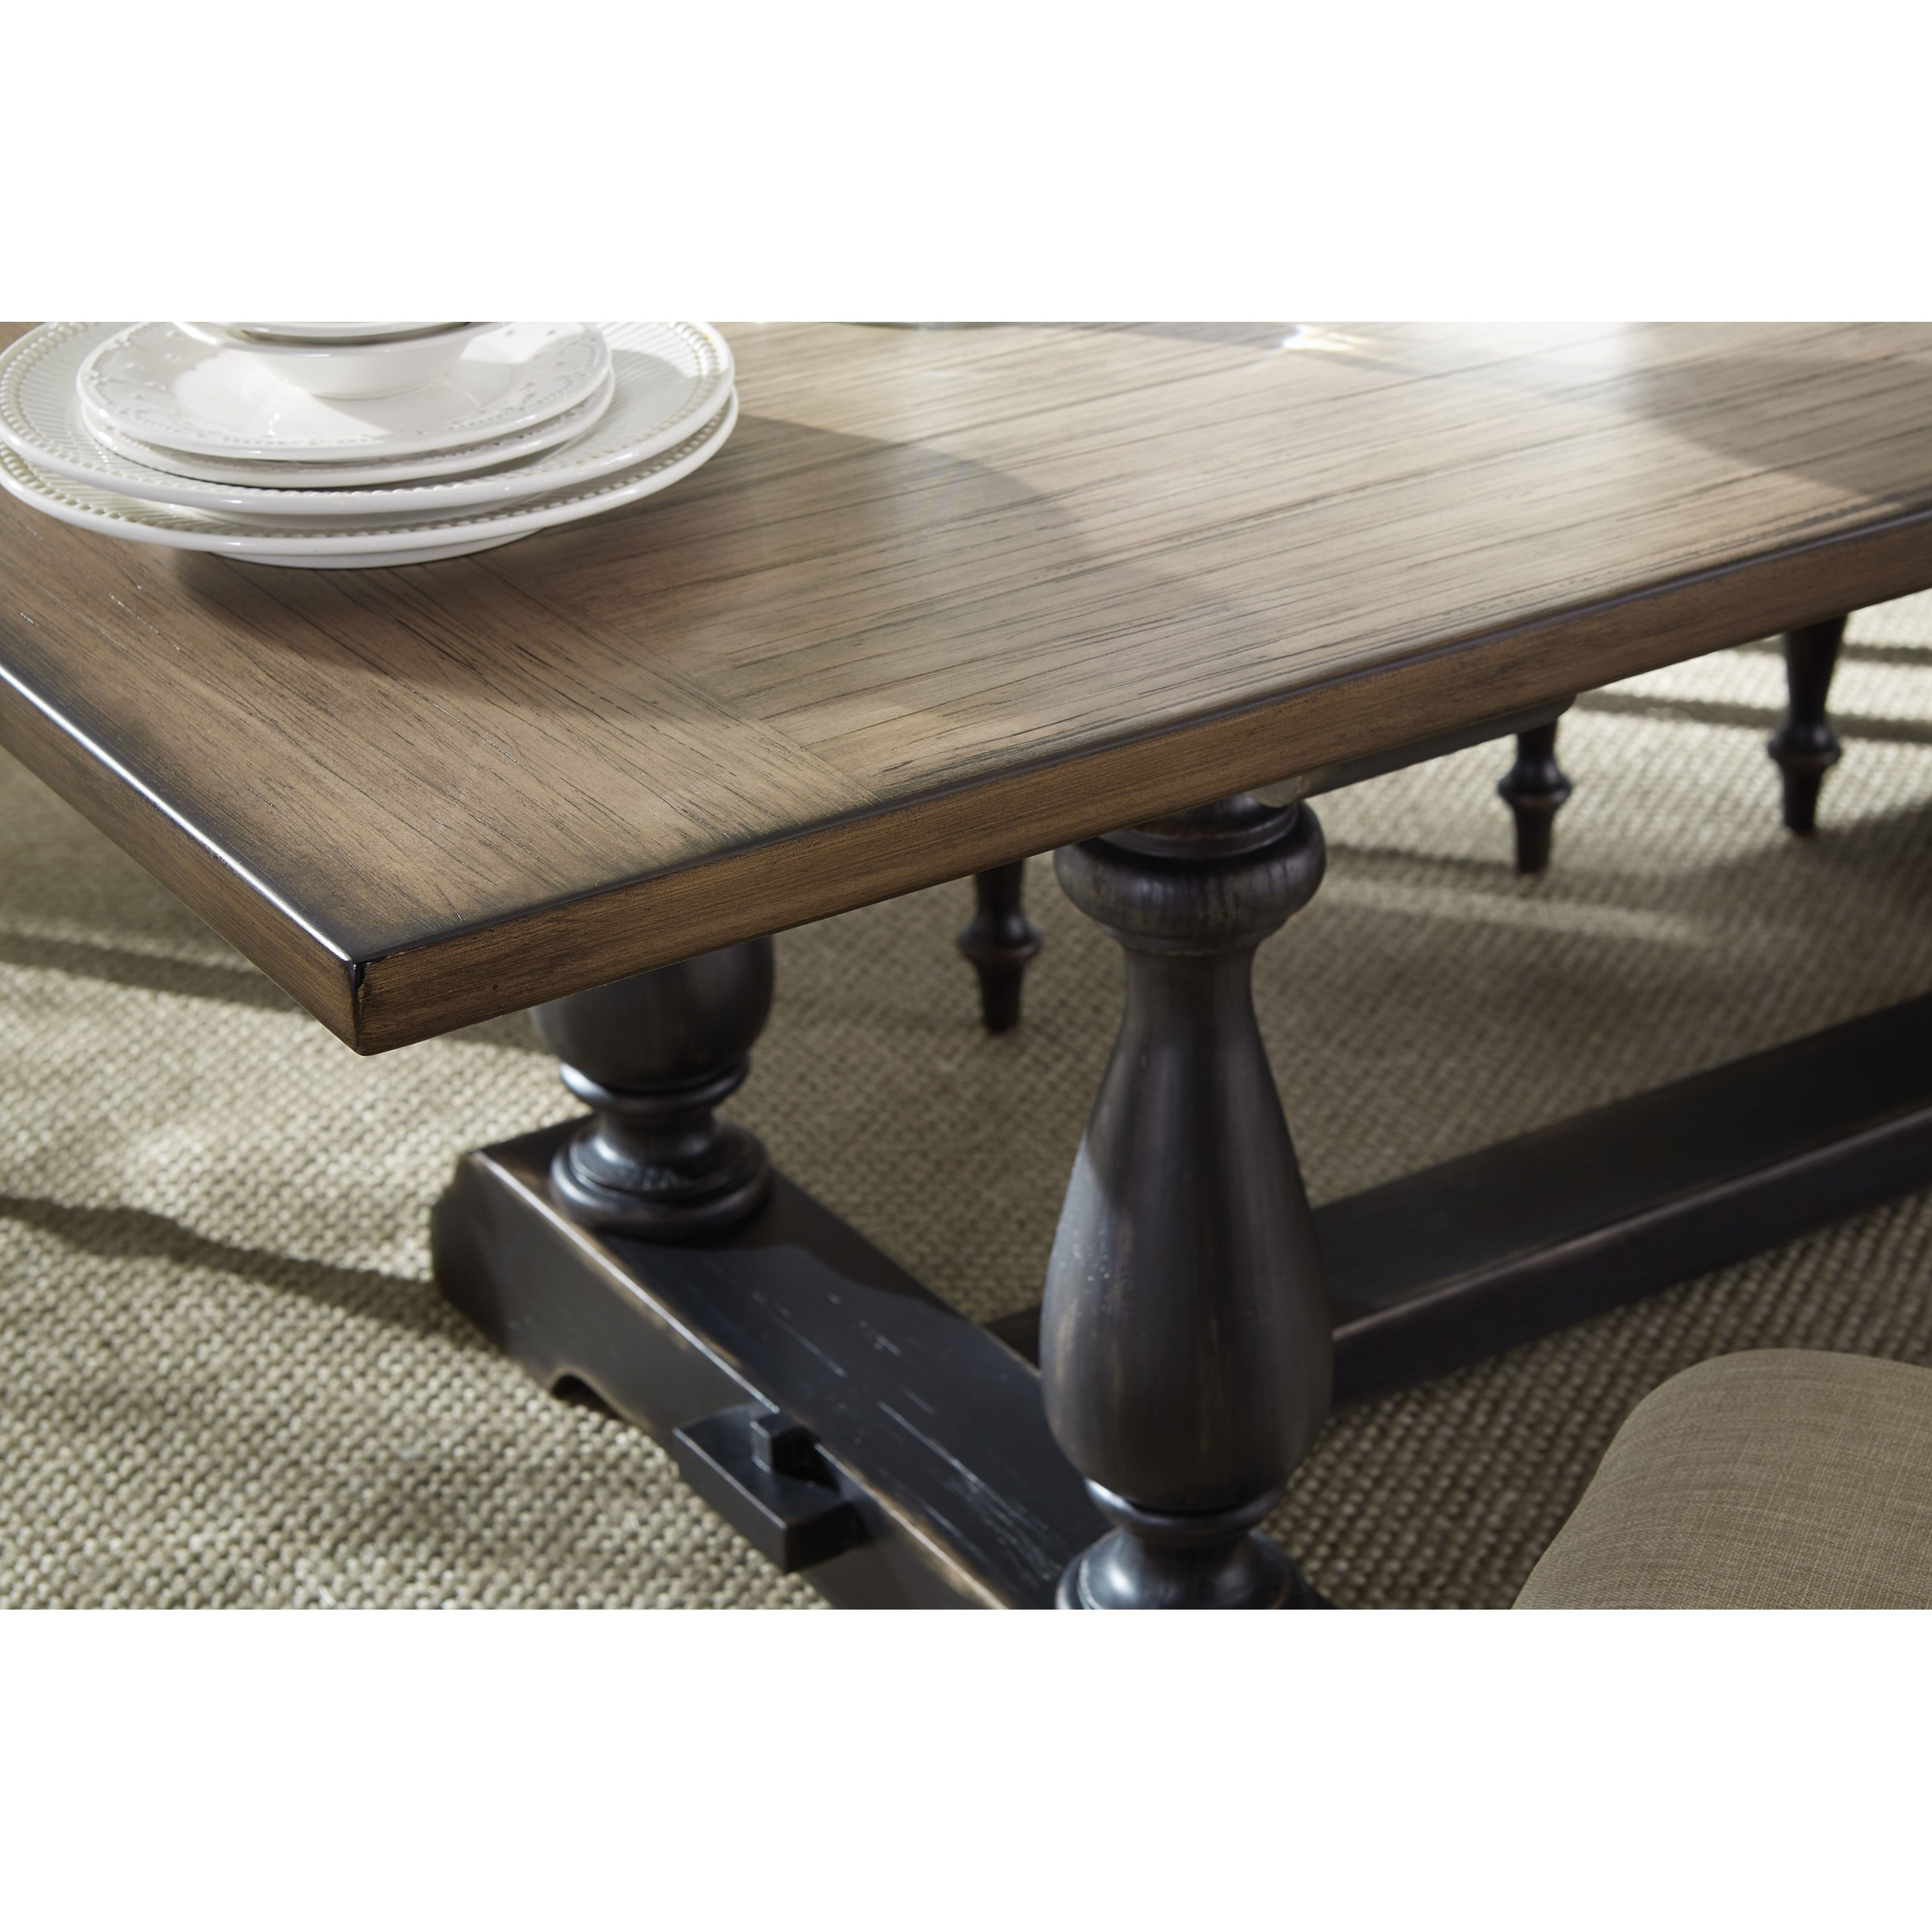 Standard Furniture Cambria Rectangular White Wood And: Standard Furniture Cambria Two-Tone Dining Table With